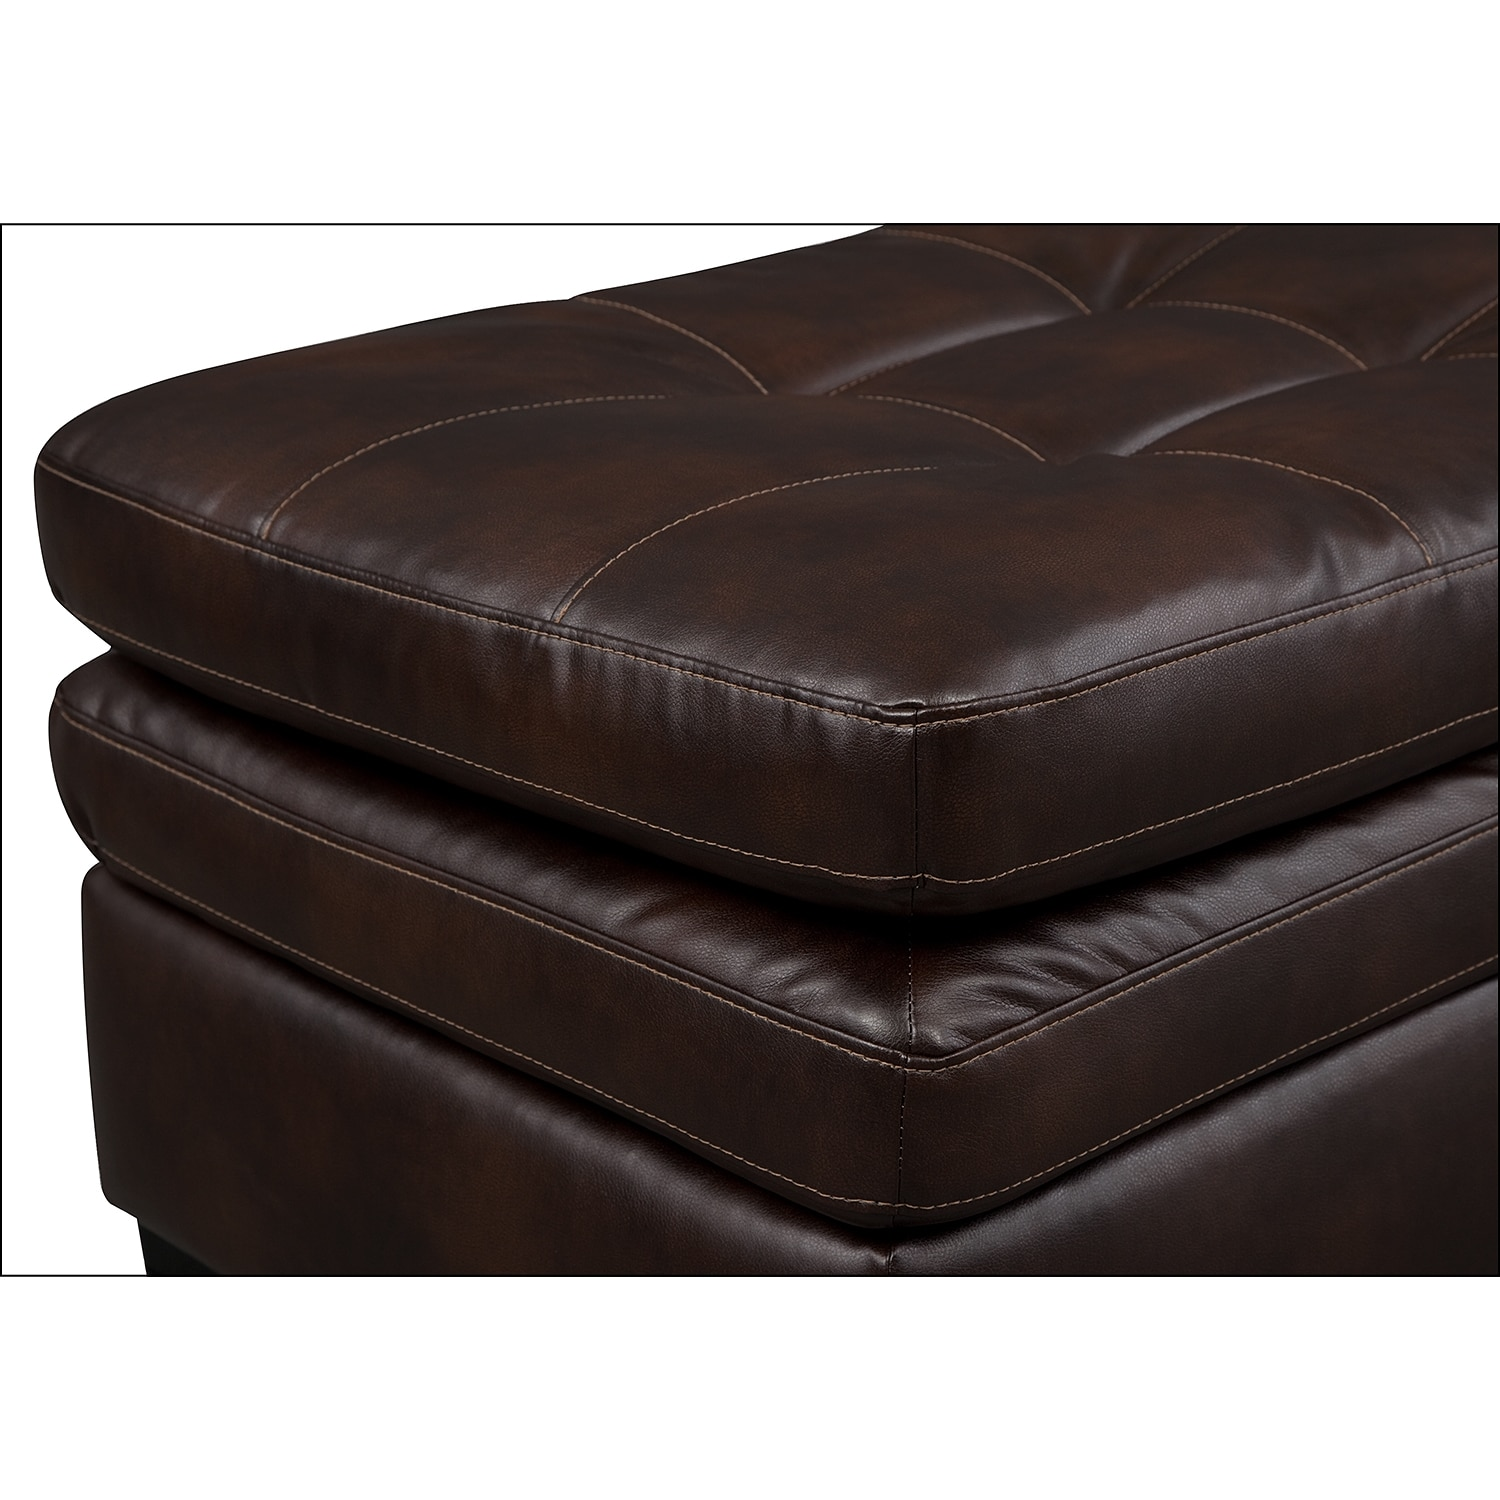 Legend Brown Leather Ottoman Value City Furniture